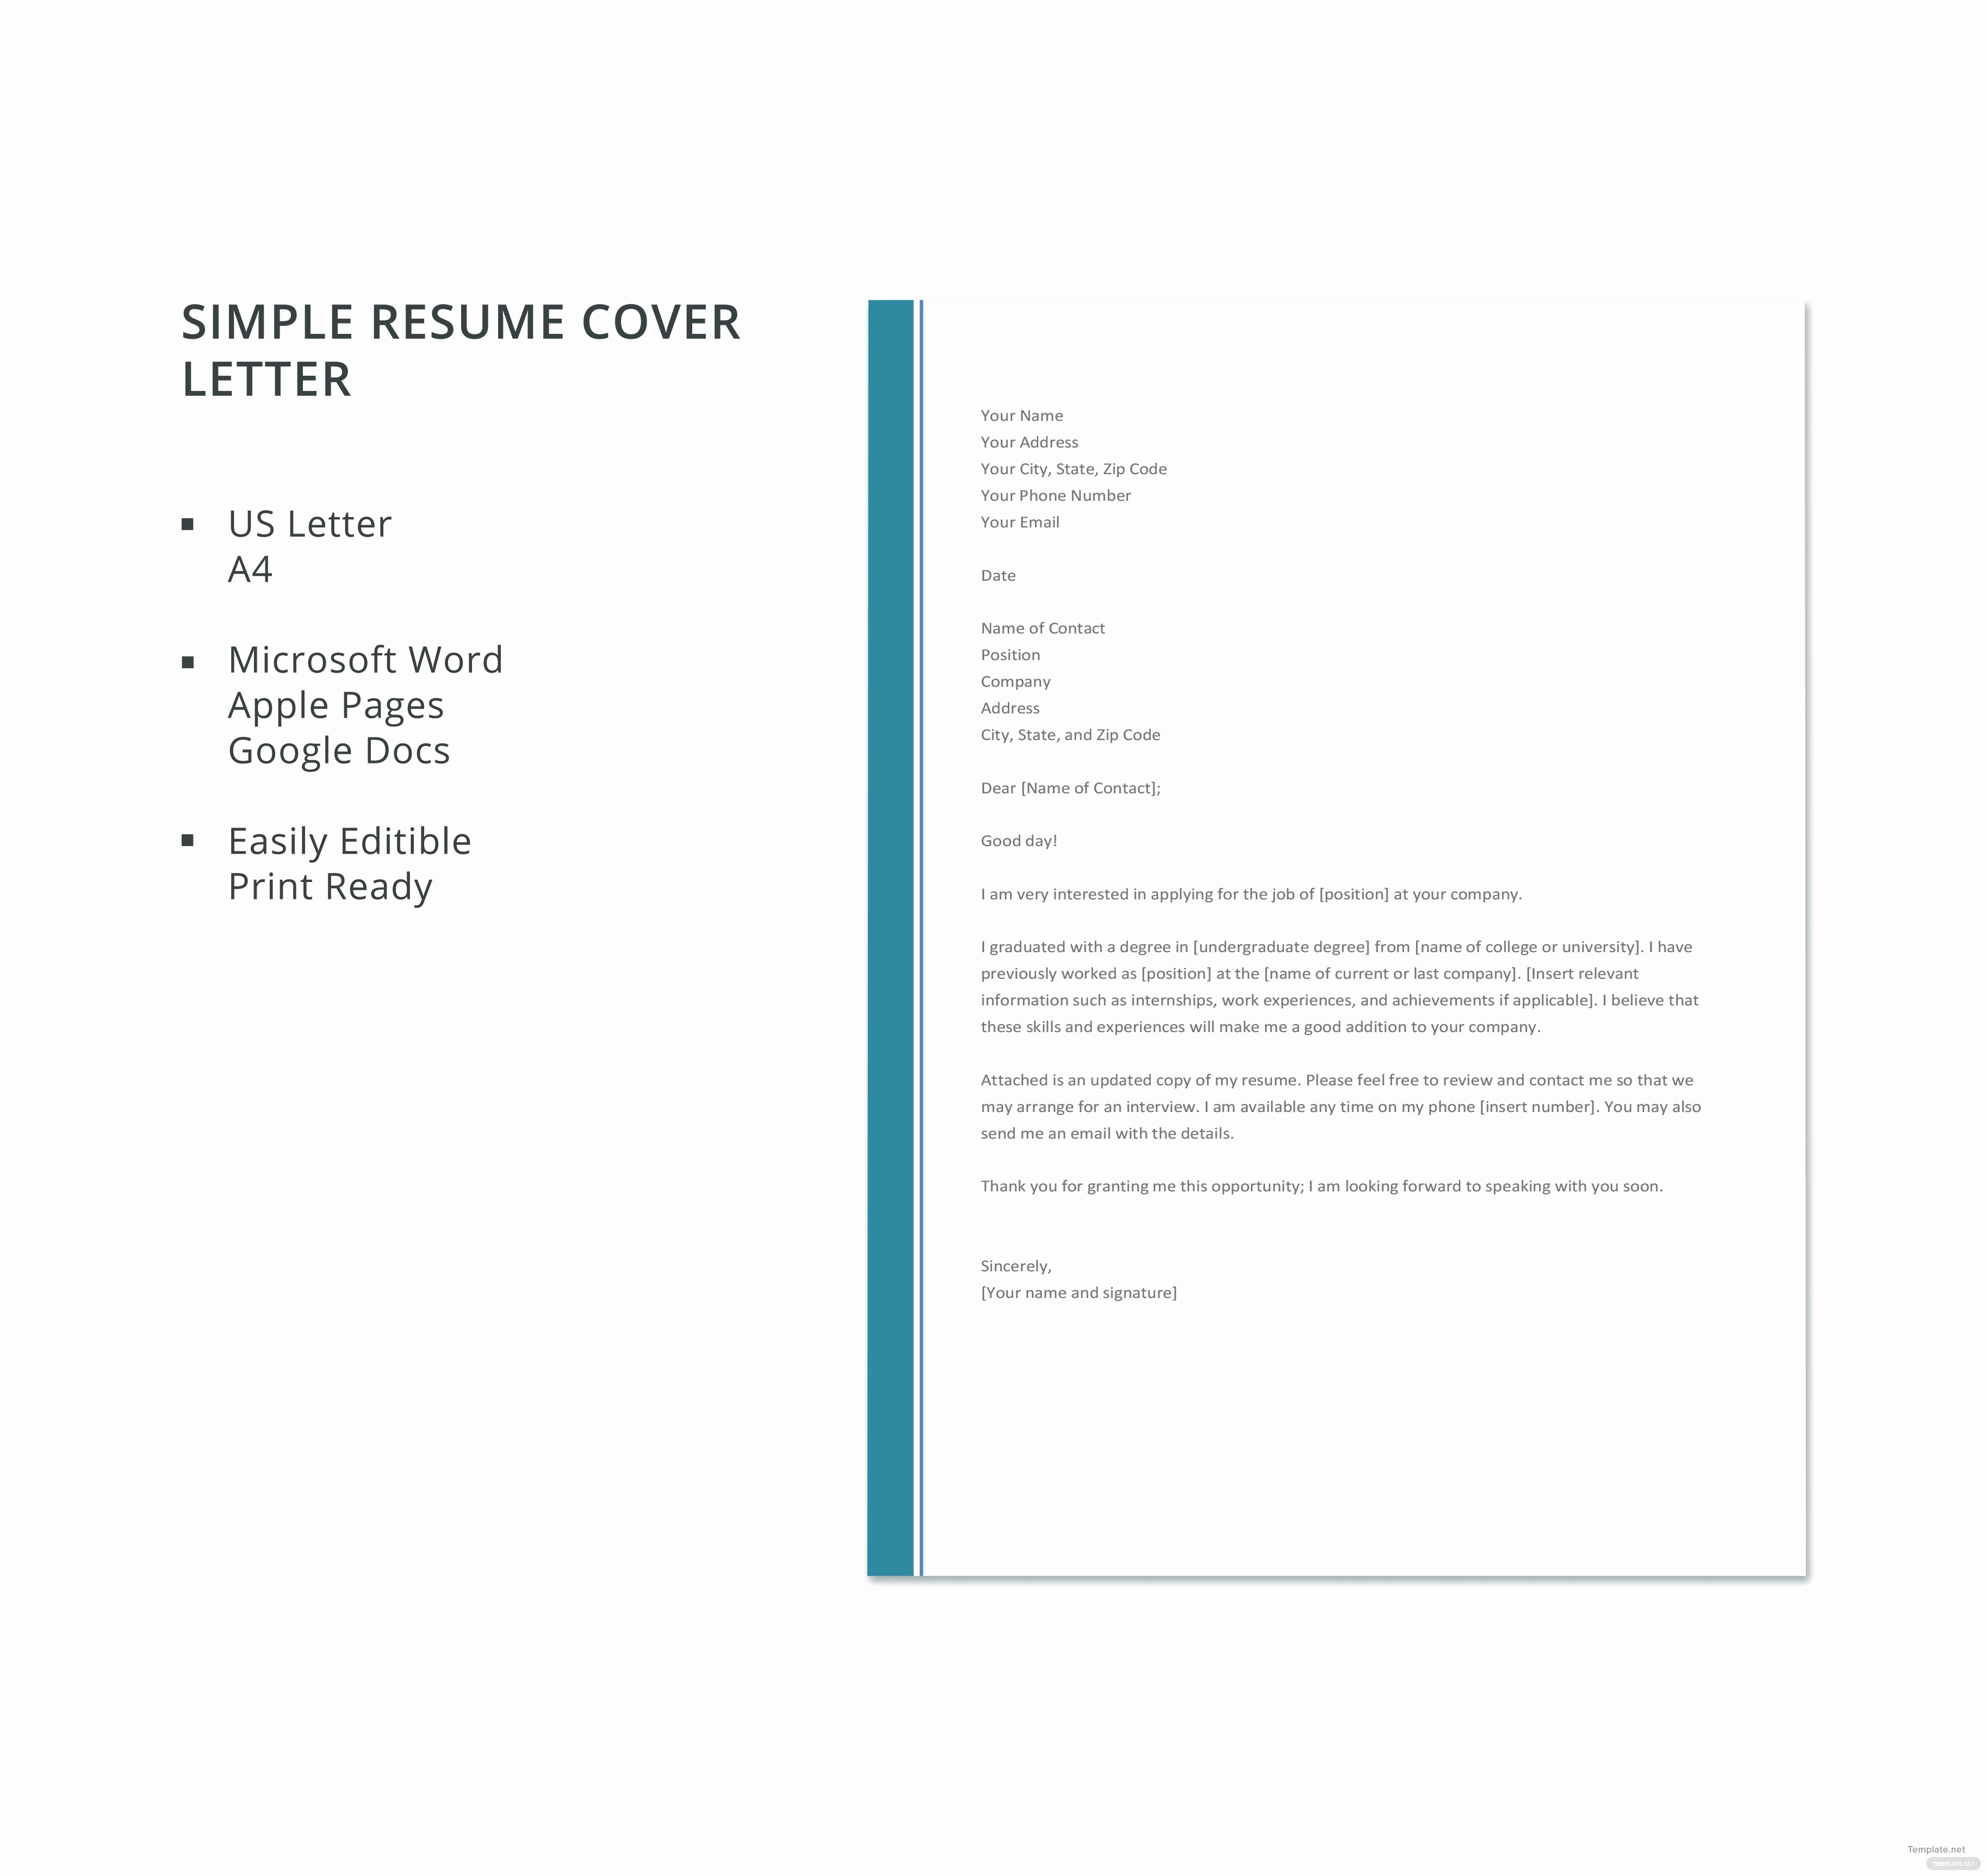 Simple Cover Page for Resume Luxury Free Simple Resume Cover Letter Template In Microsoft Word